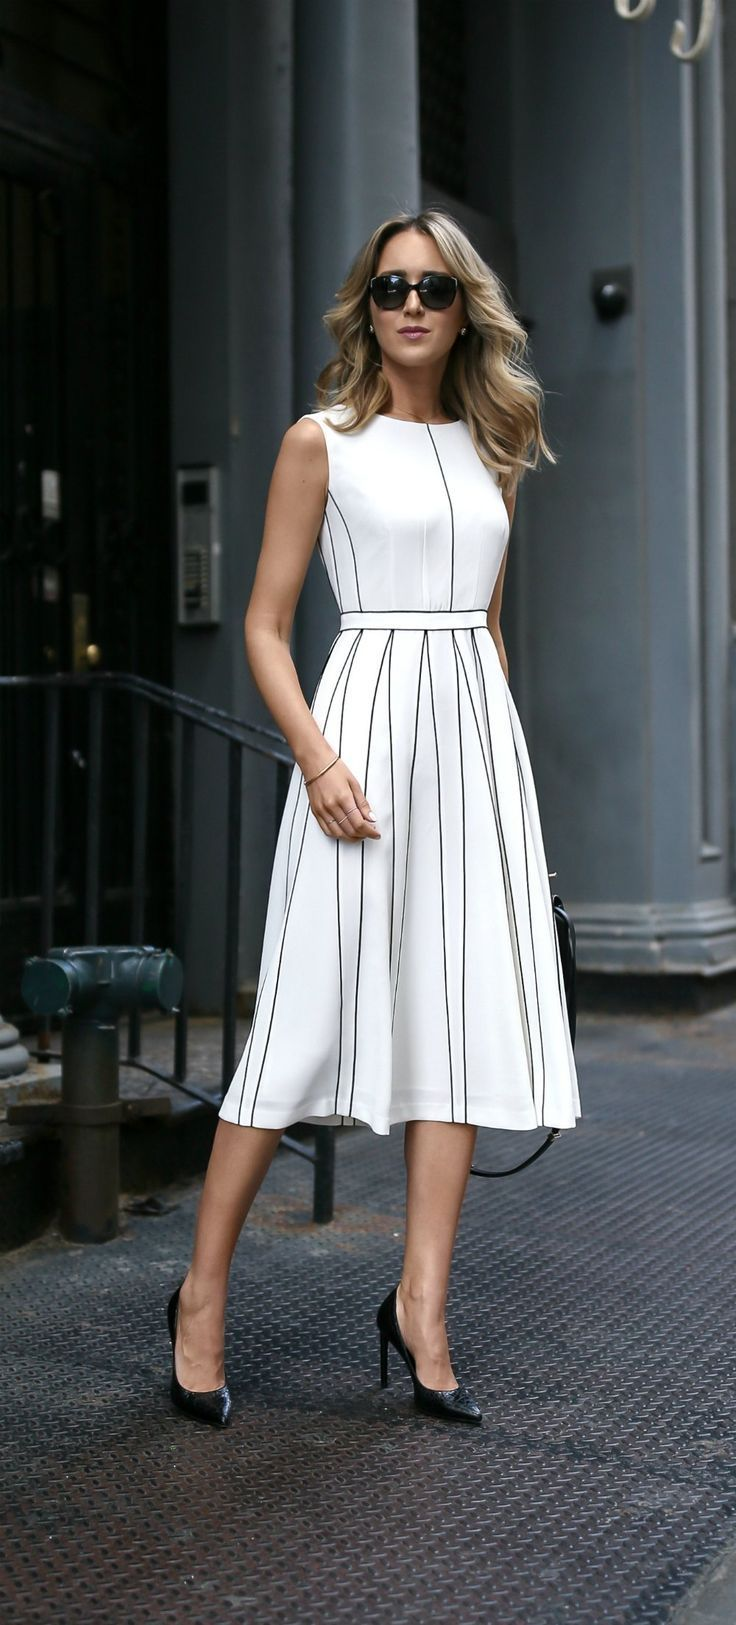 53b8a2f66fc white pleated sleeveless a-line midi dress with black piping illusion pleats     classic summer style    perfect for the office or any special event!